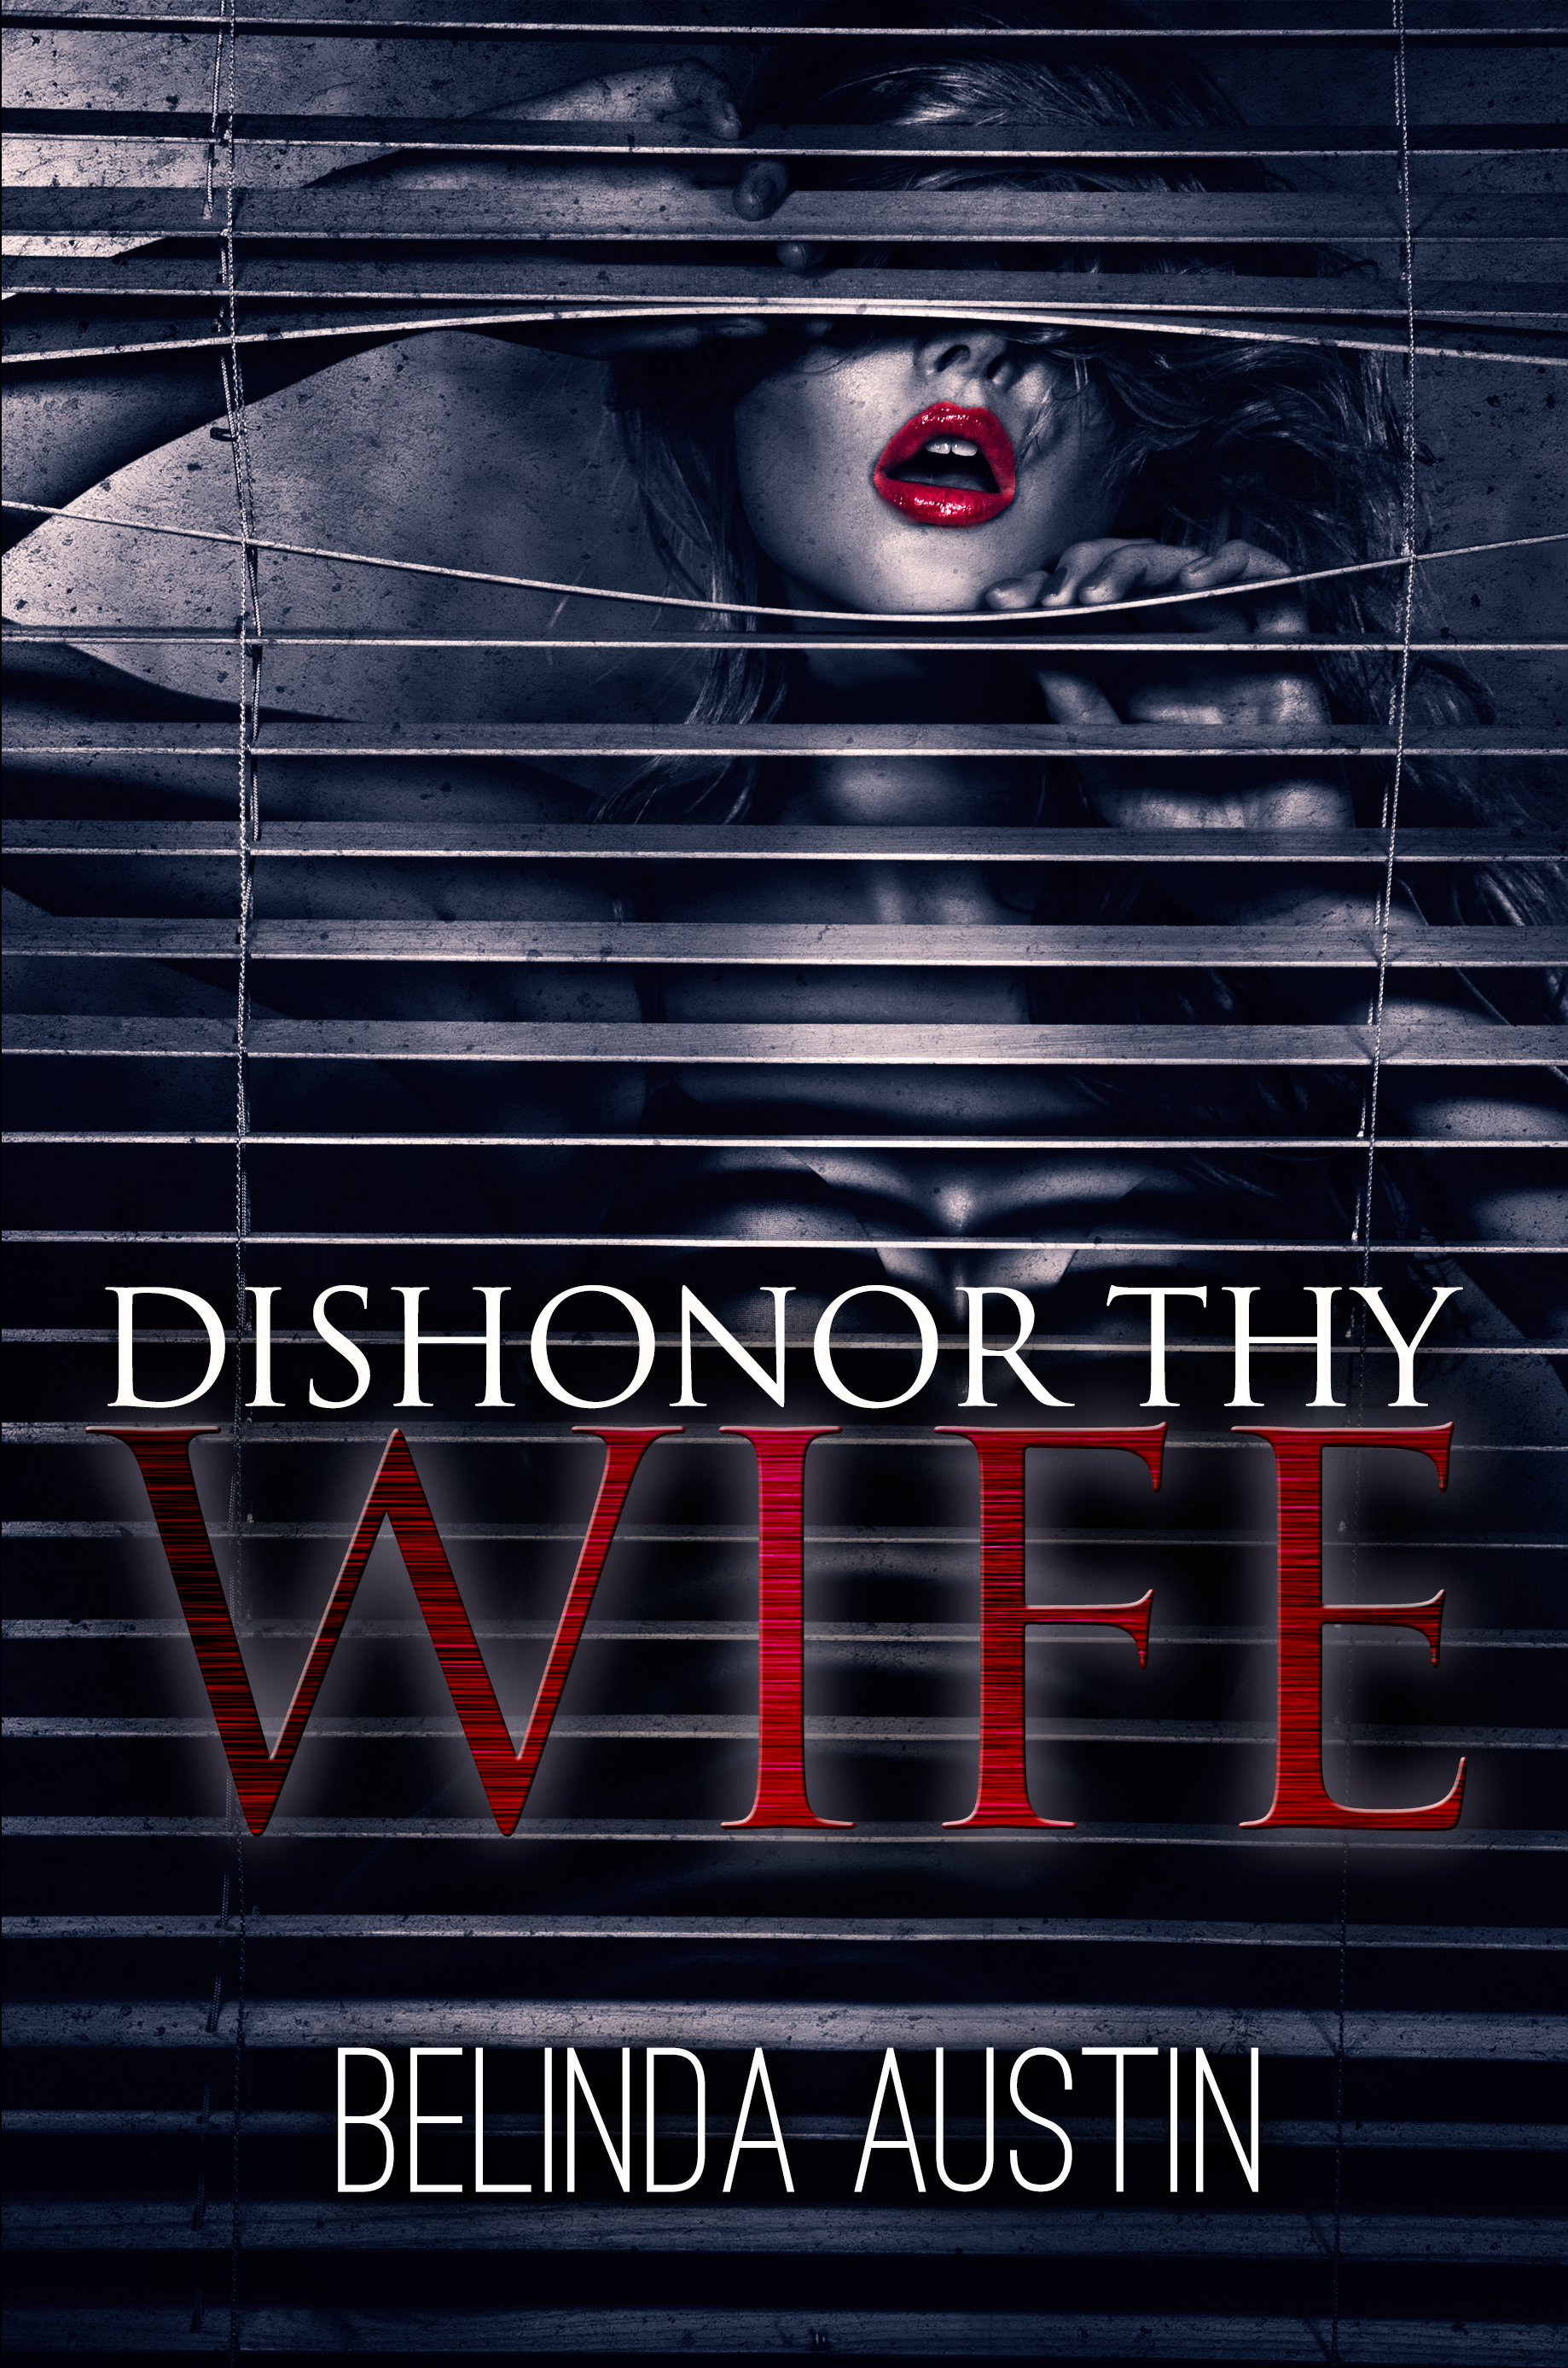 Dishonor They Wife by Belinda Austin